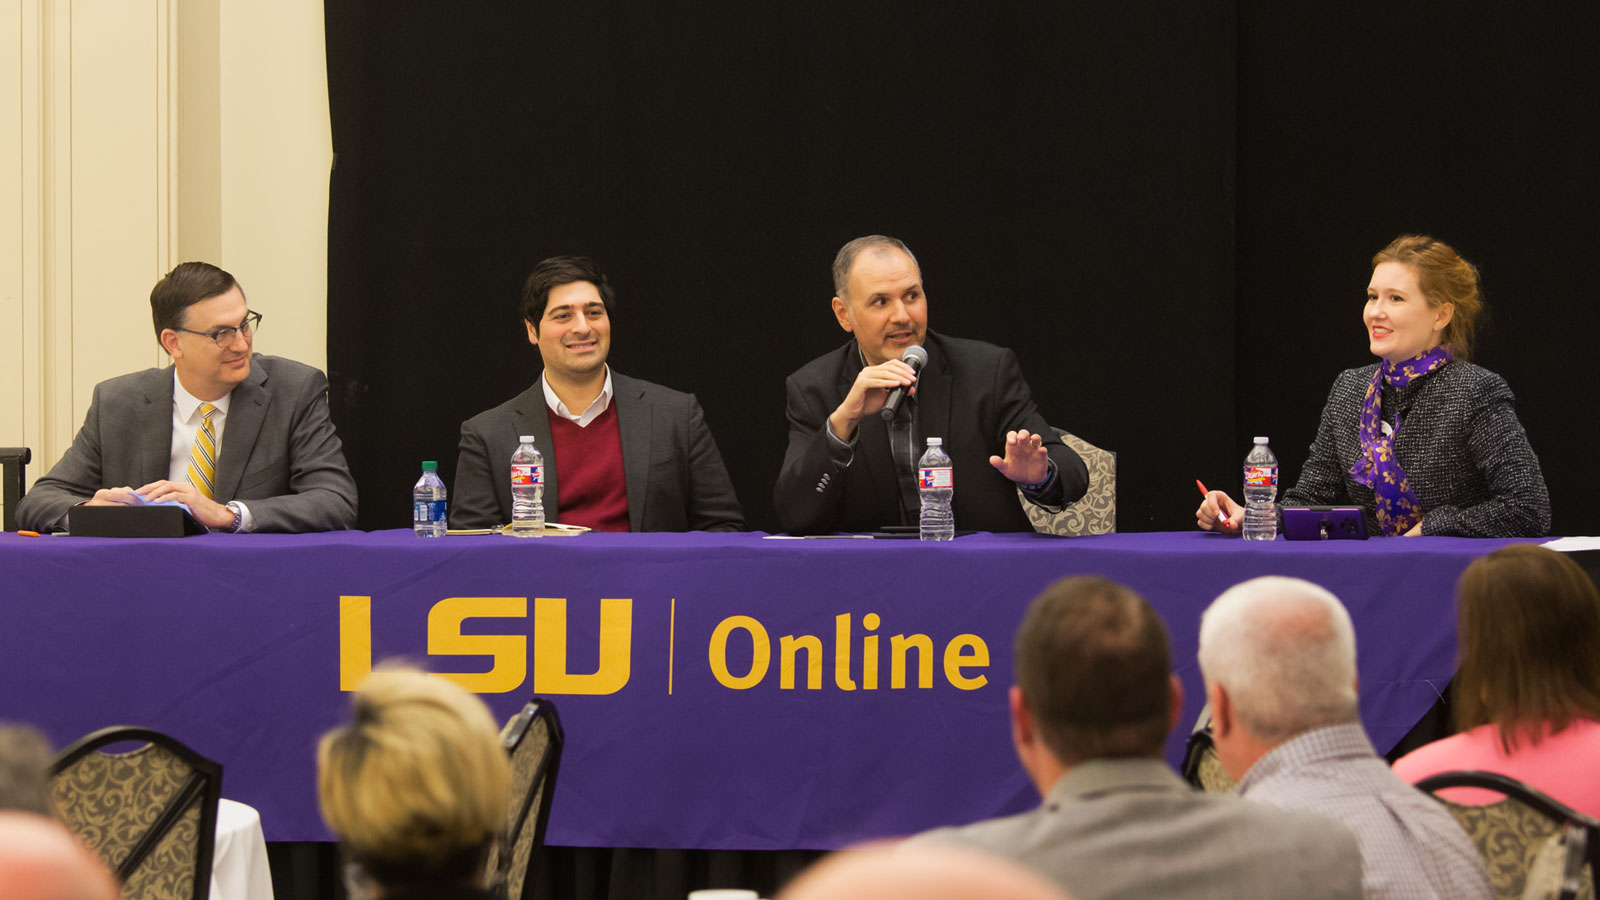 LSU Online panel taking questions